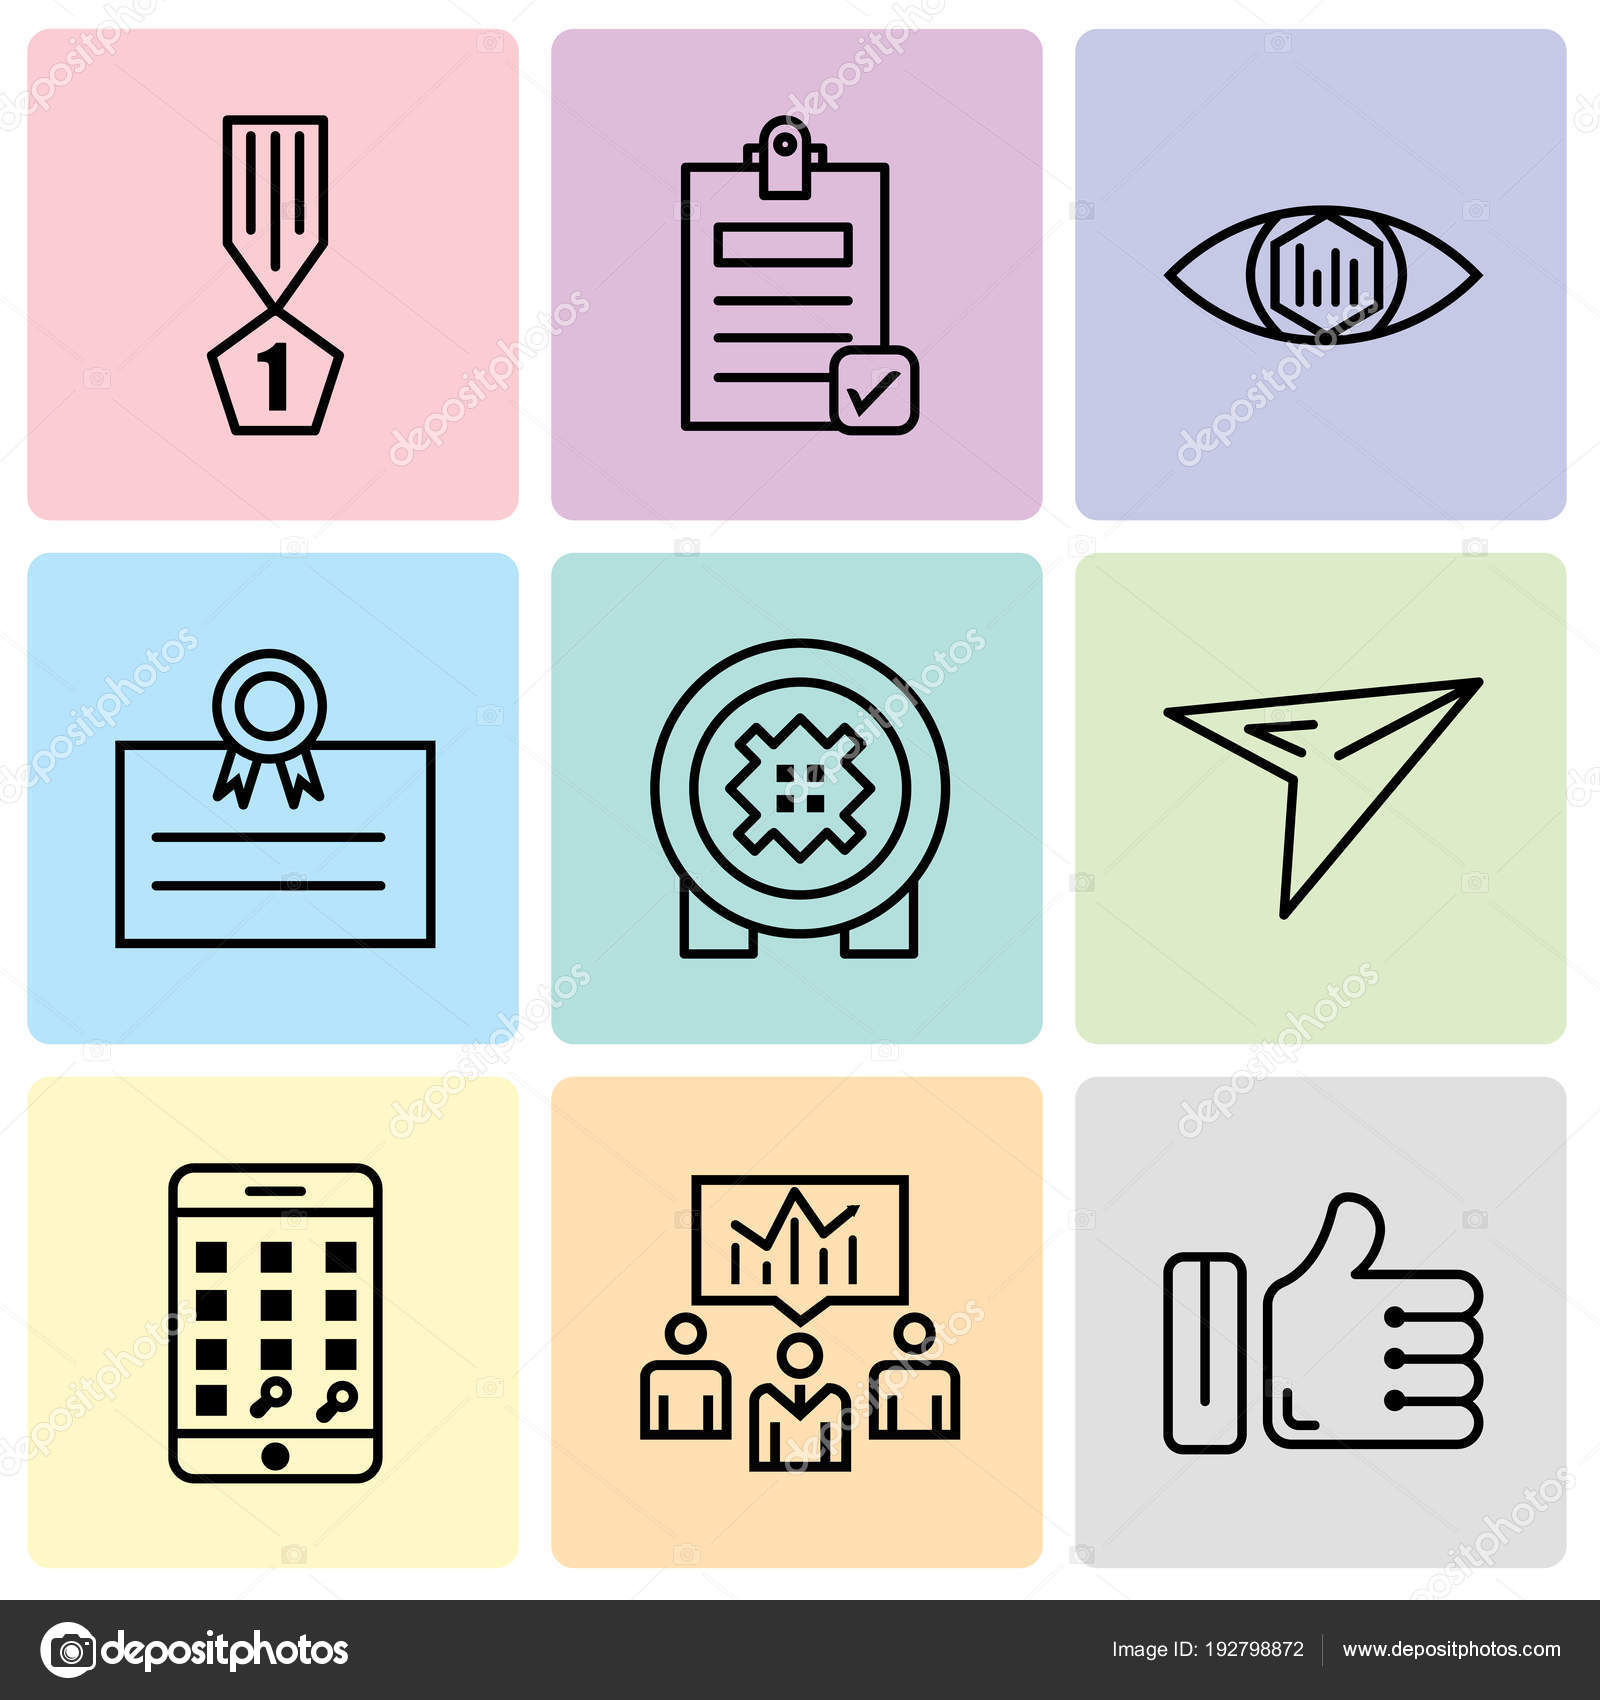 Set Of 9 simple editable icons such as like, business men